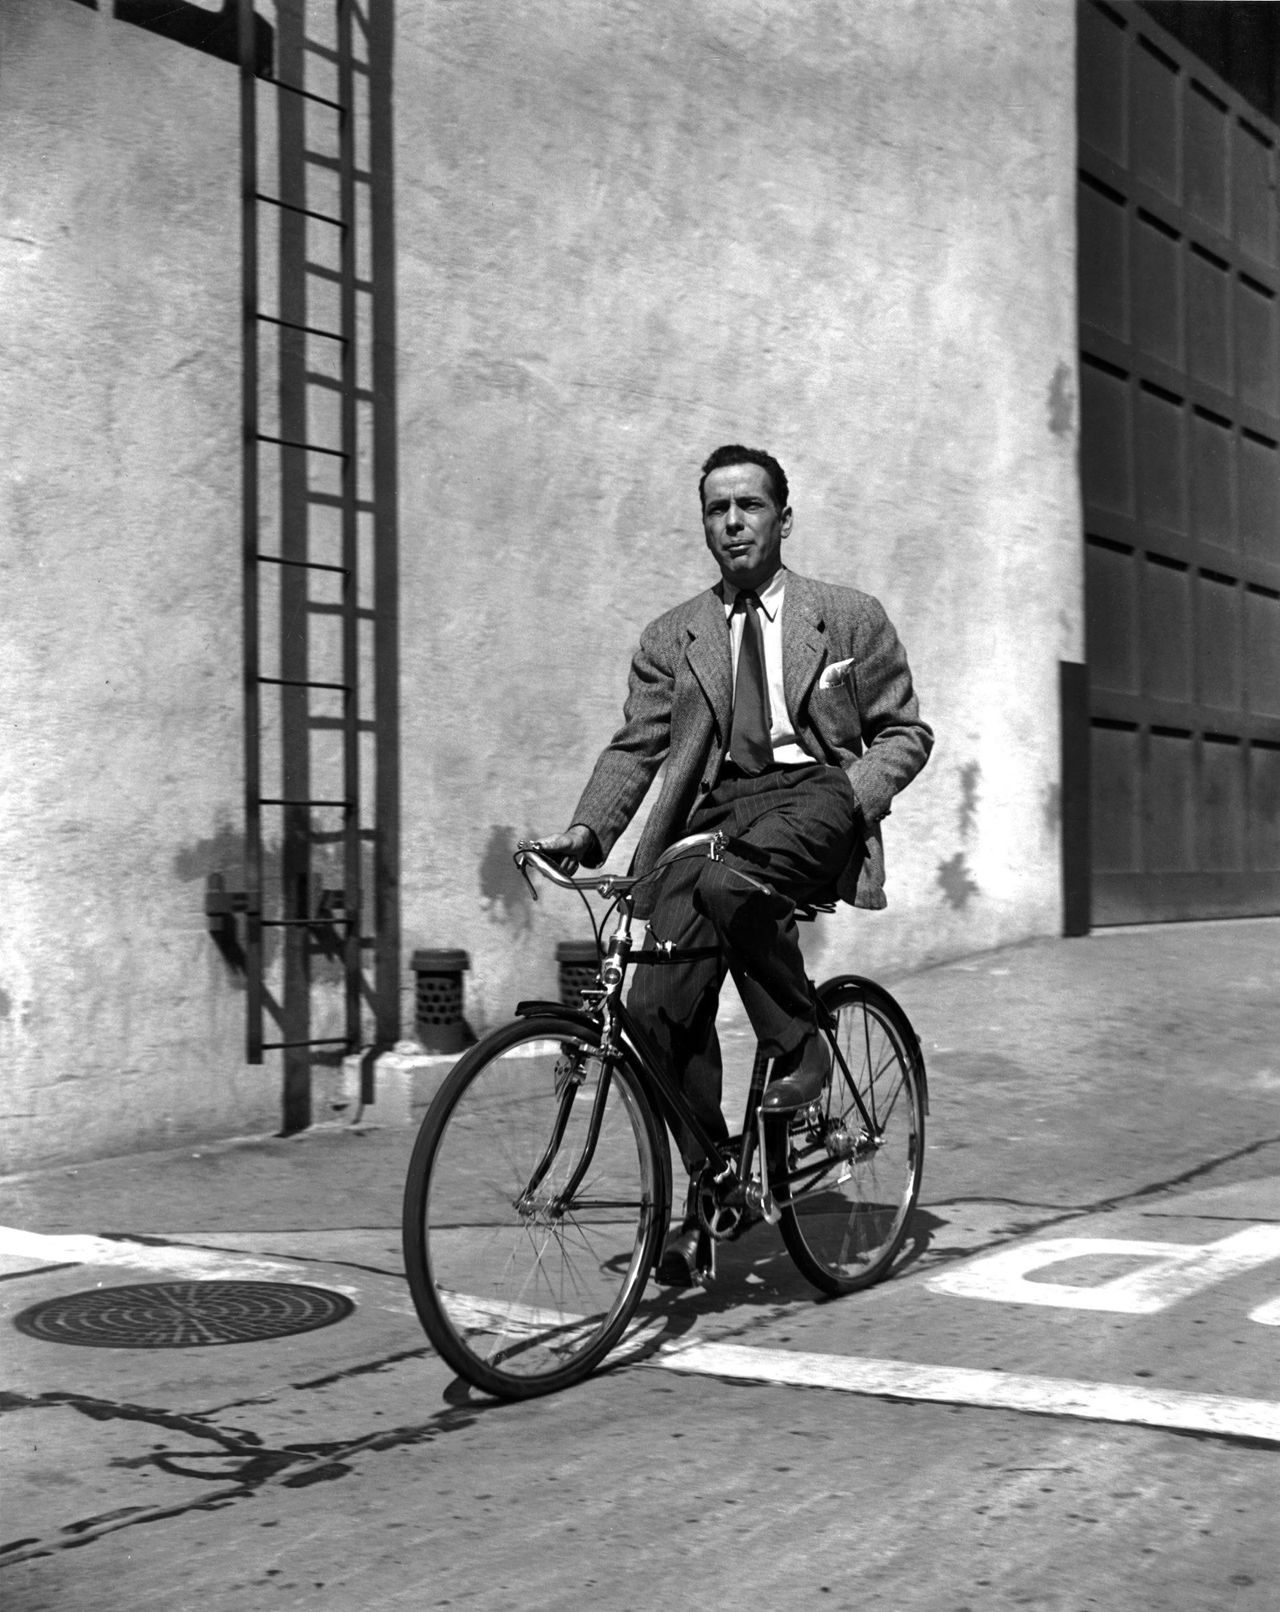 Humphrey Bogart on bicycle